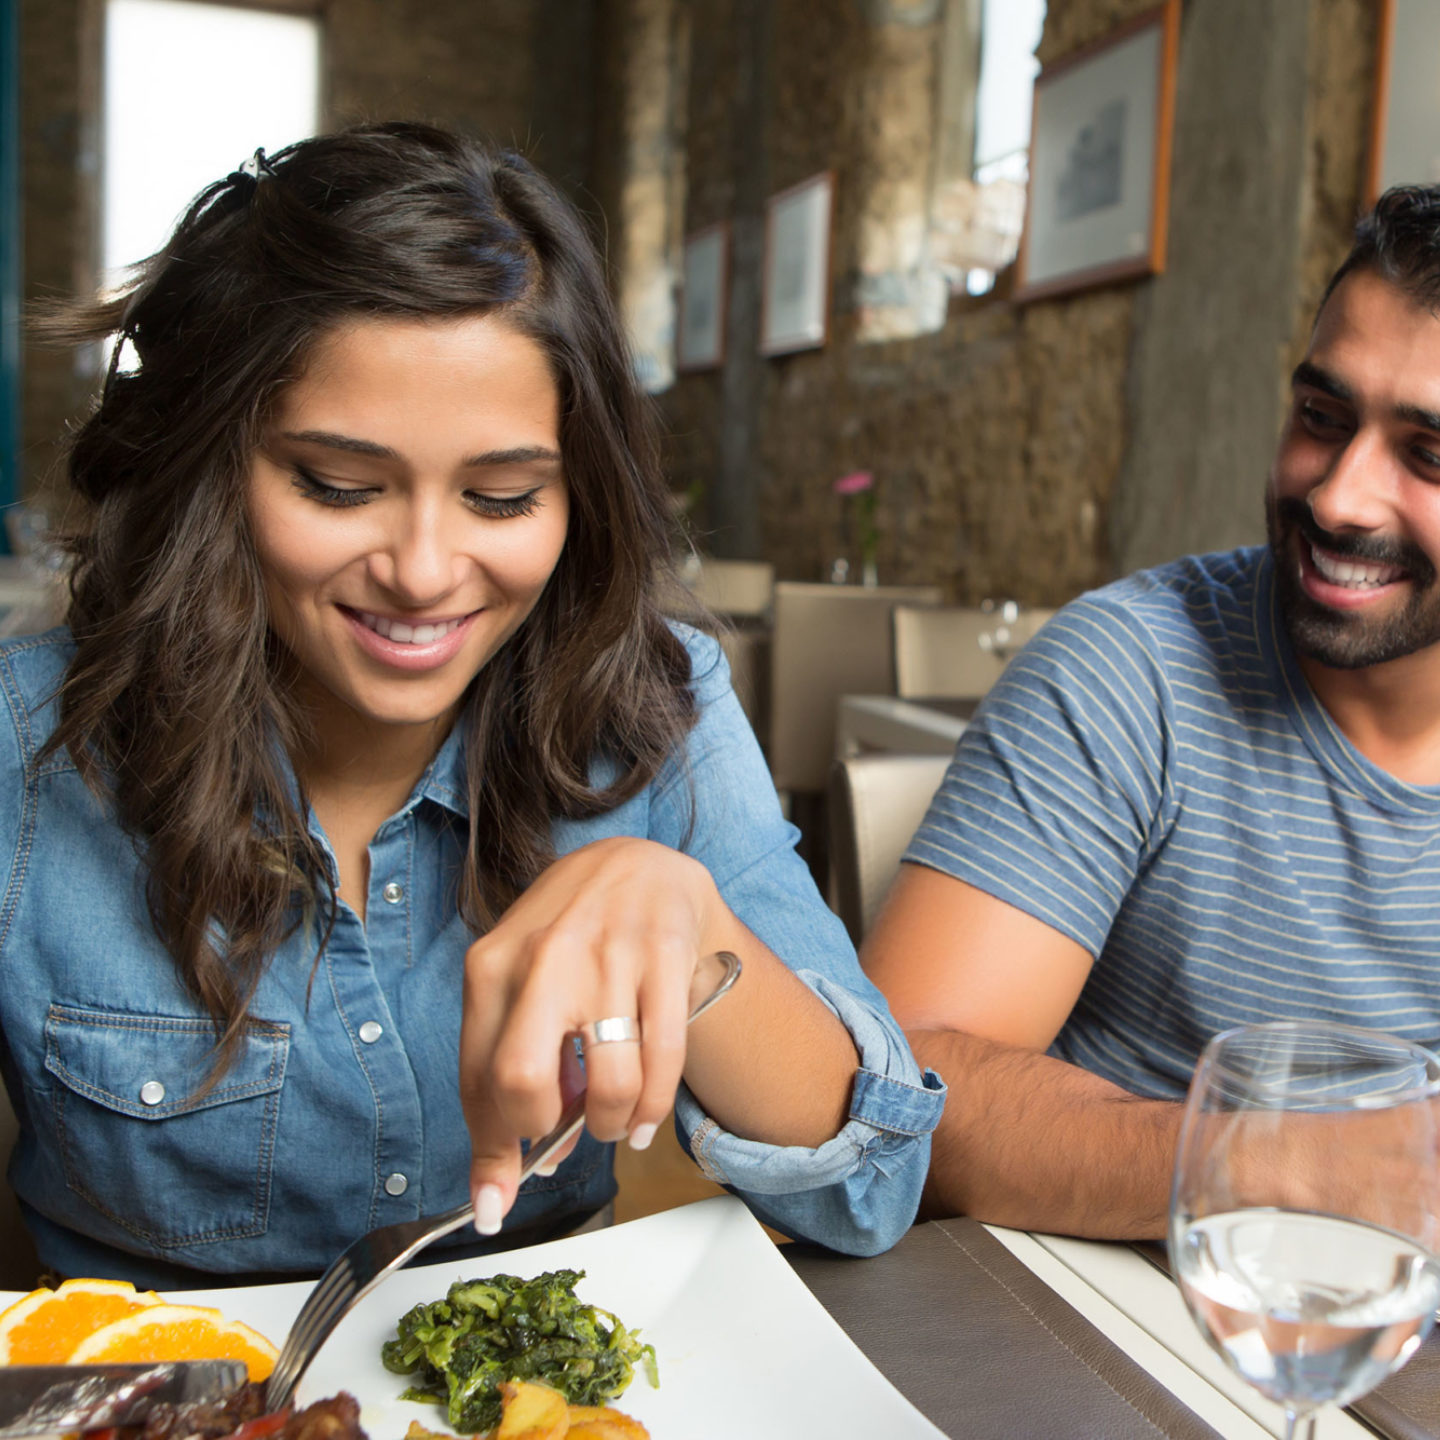 Man and woman eating in restaurant - Avoid Souring Your Sweet Day - Love our Valuable Tips | NSF International